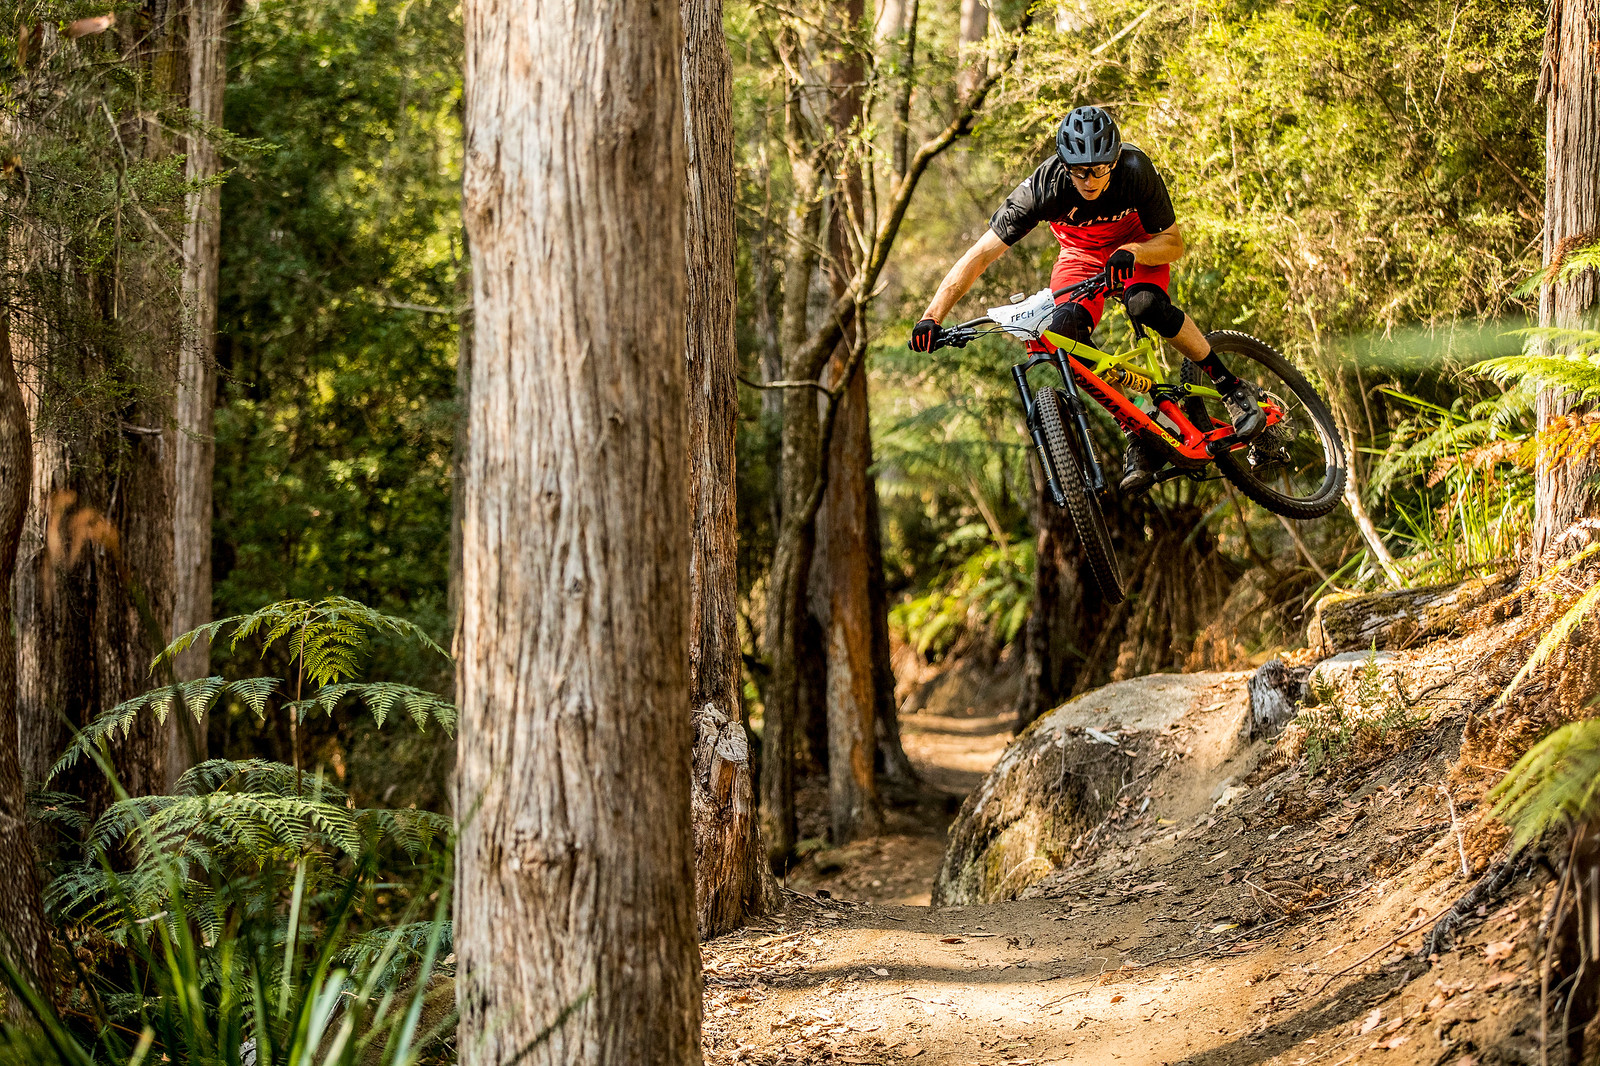 Ryan De la Rue has been building trails here for exactly three years now. You could say he has intimate knowledge of them. Fast fit and racing this weekend. Stage one bonus gap.